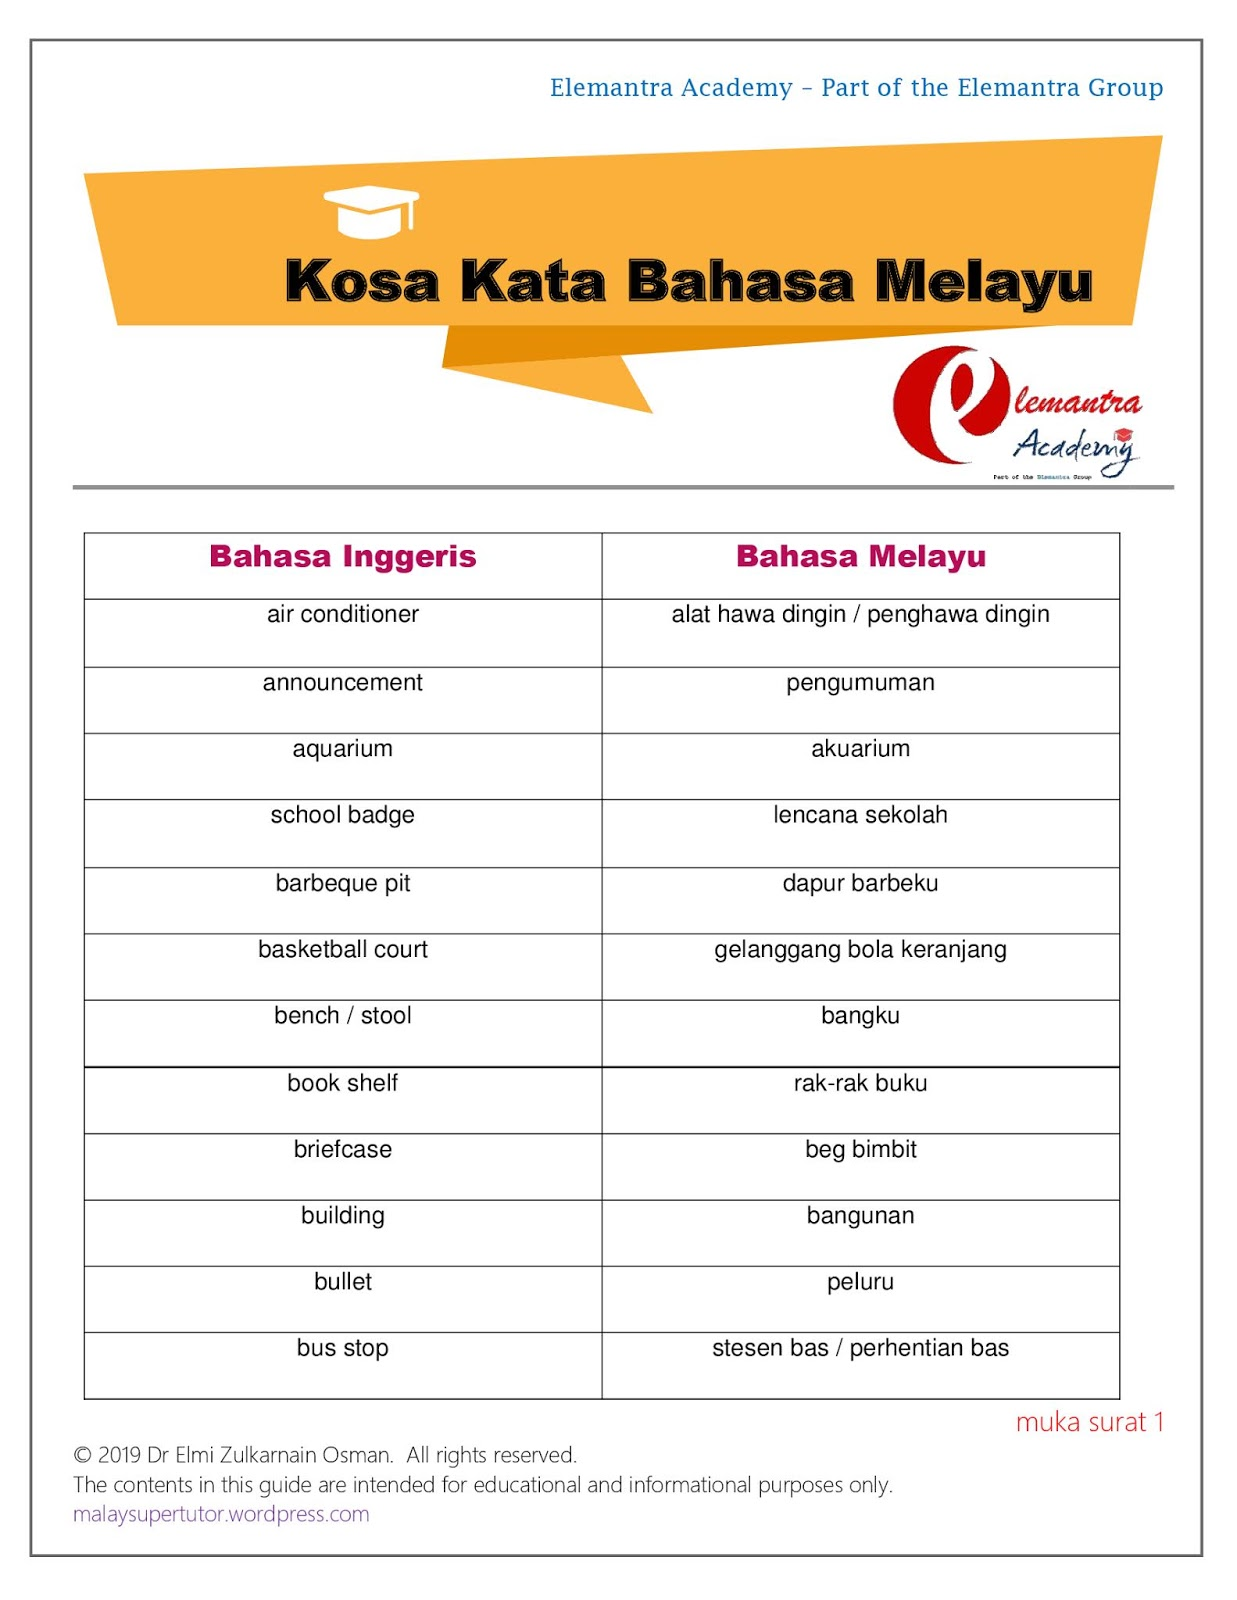 Malay Language Tuition Malay Tutor Malay Tuition Singapore Essential Malay Words And Phrases For Upper Primary And Lower Secondary School Primary 5 To Secondary 2 Students